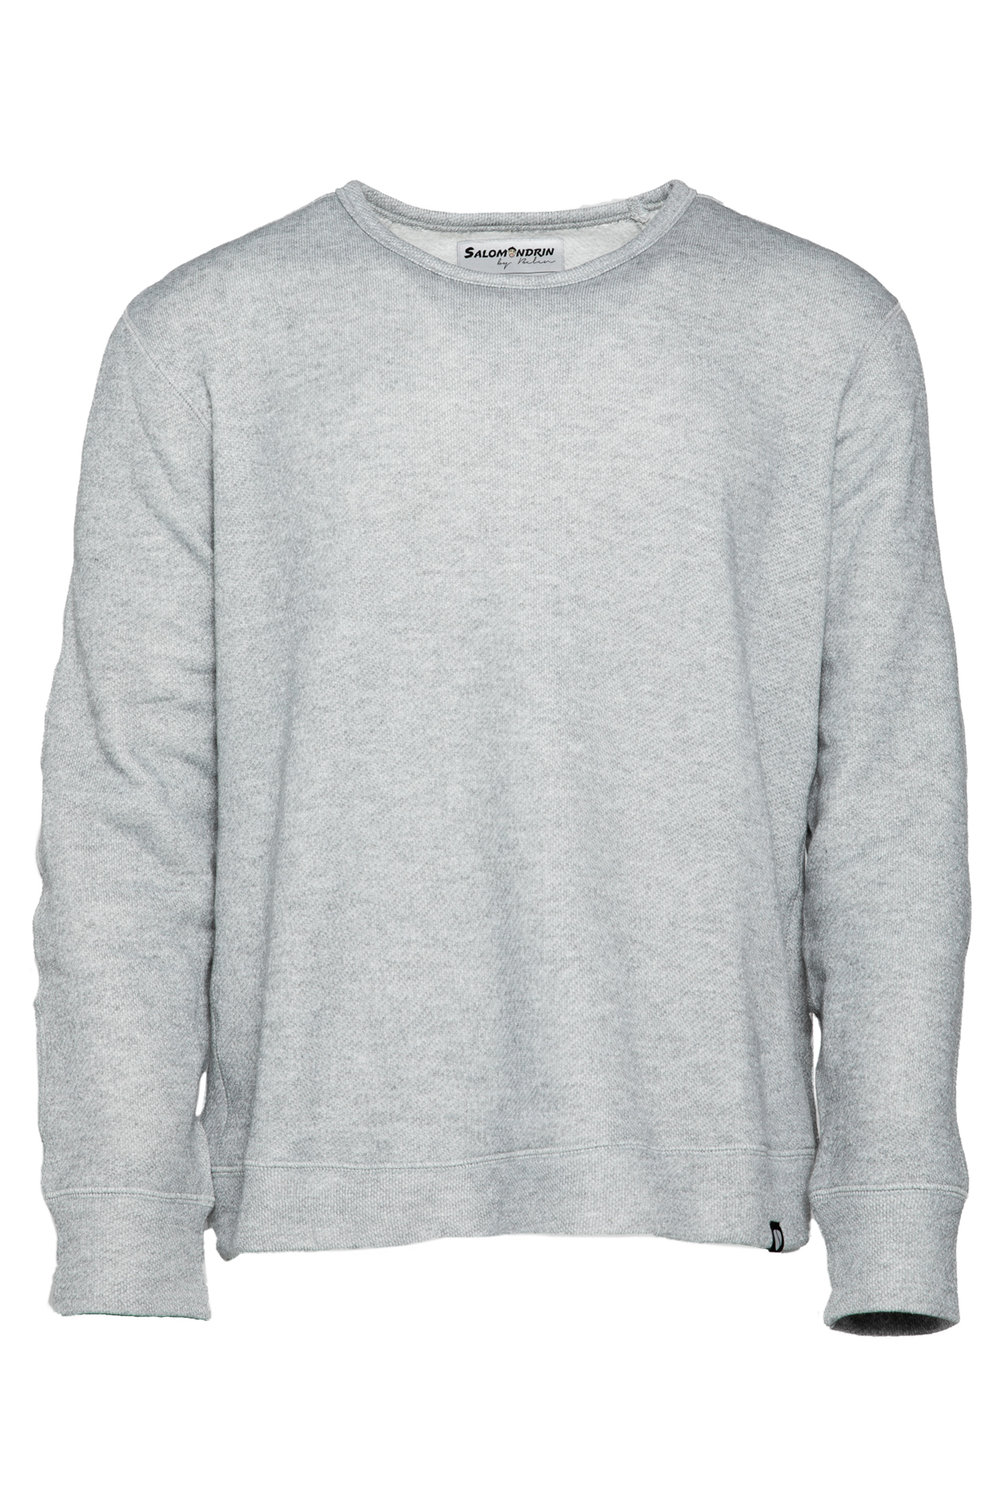 Michael Crew Neck - Heather Grey